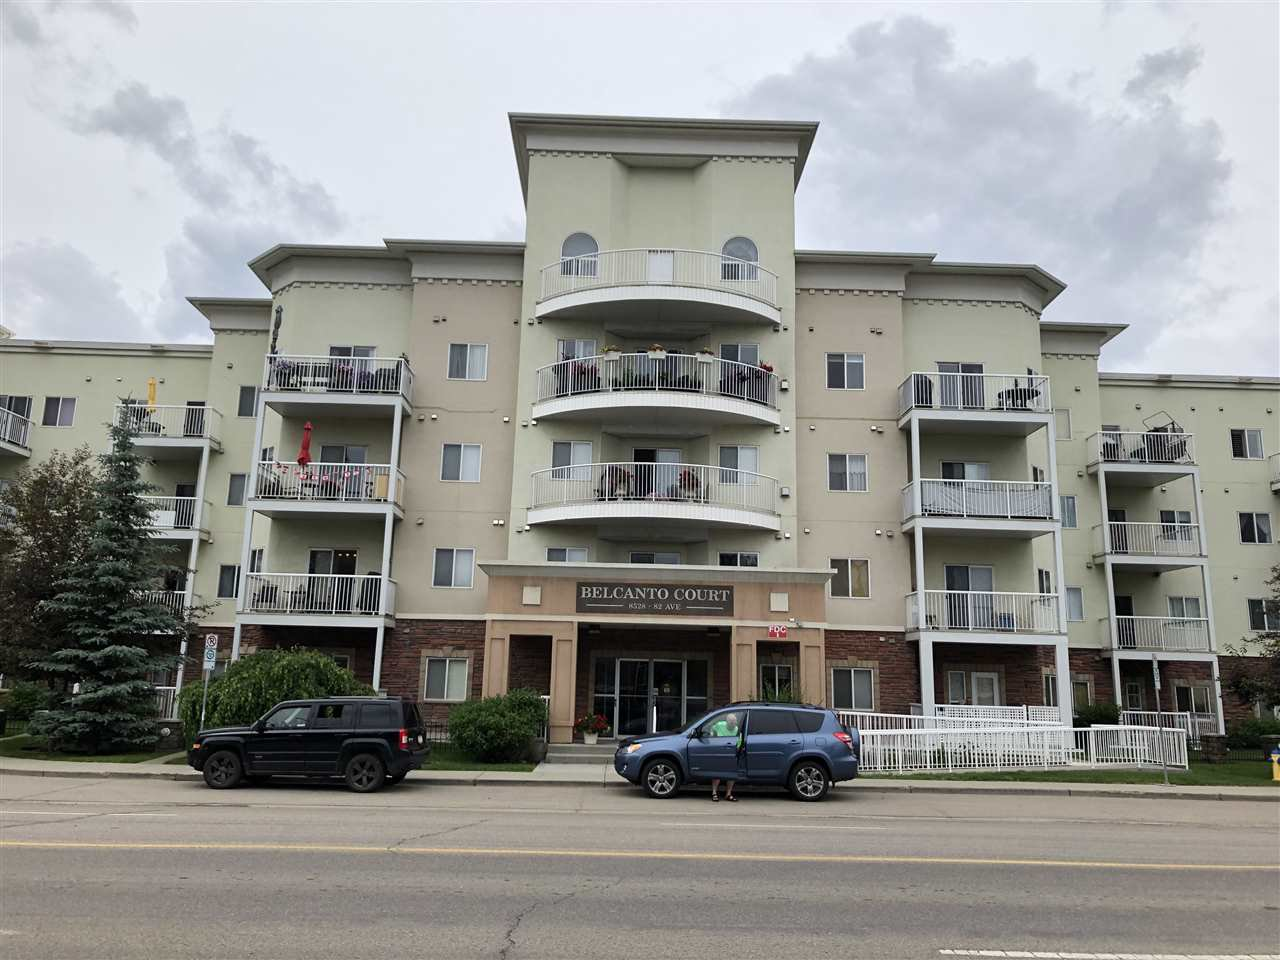 Main Photo: 111 8528 82 Avenue NW in Edmonton: Zone 18 Condo for sale : MLS®# E4203443